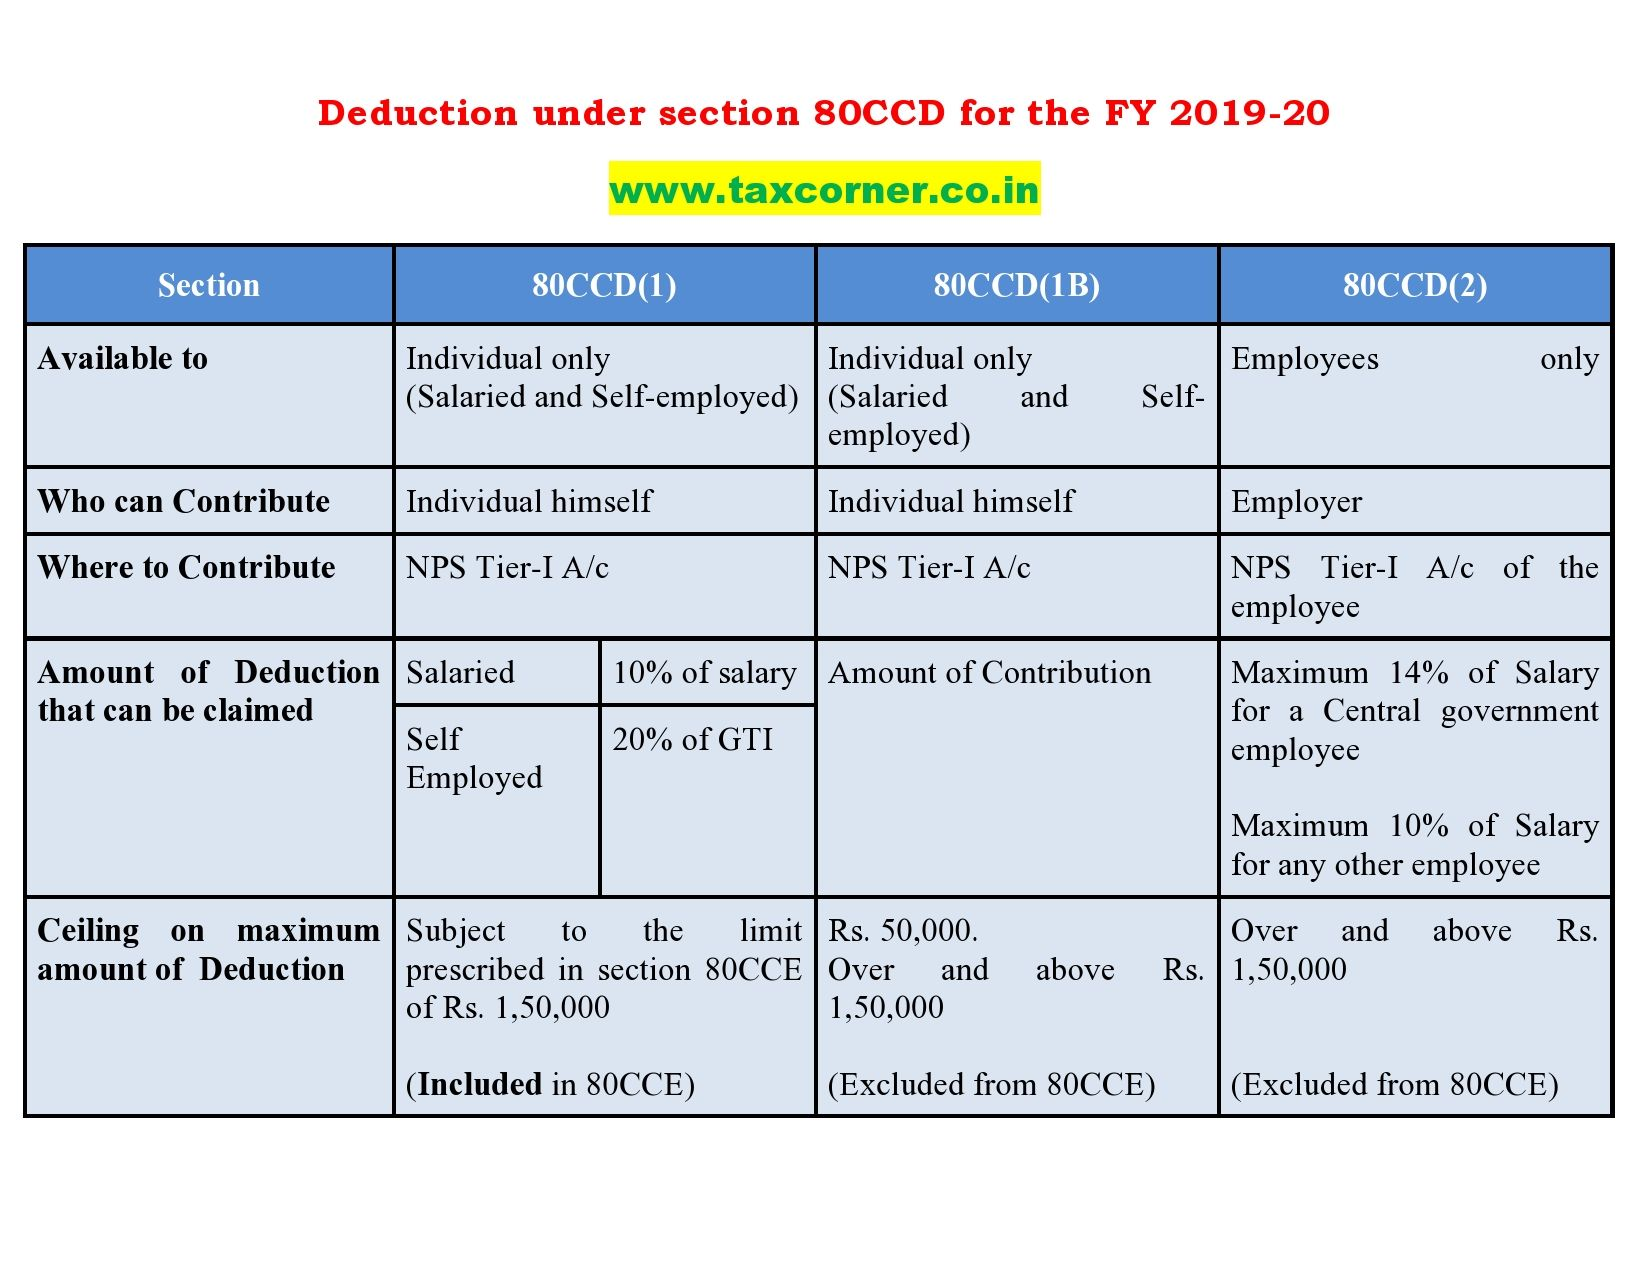 Sujit Talukder Incometaxdiary Twitter In 2020 Income Income Tax Deduction